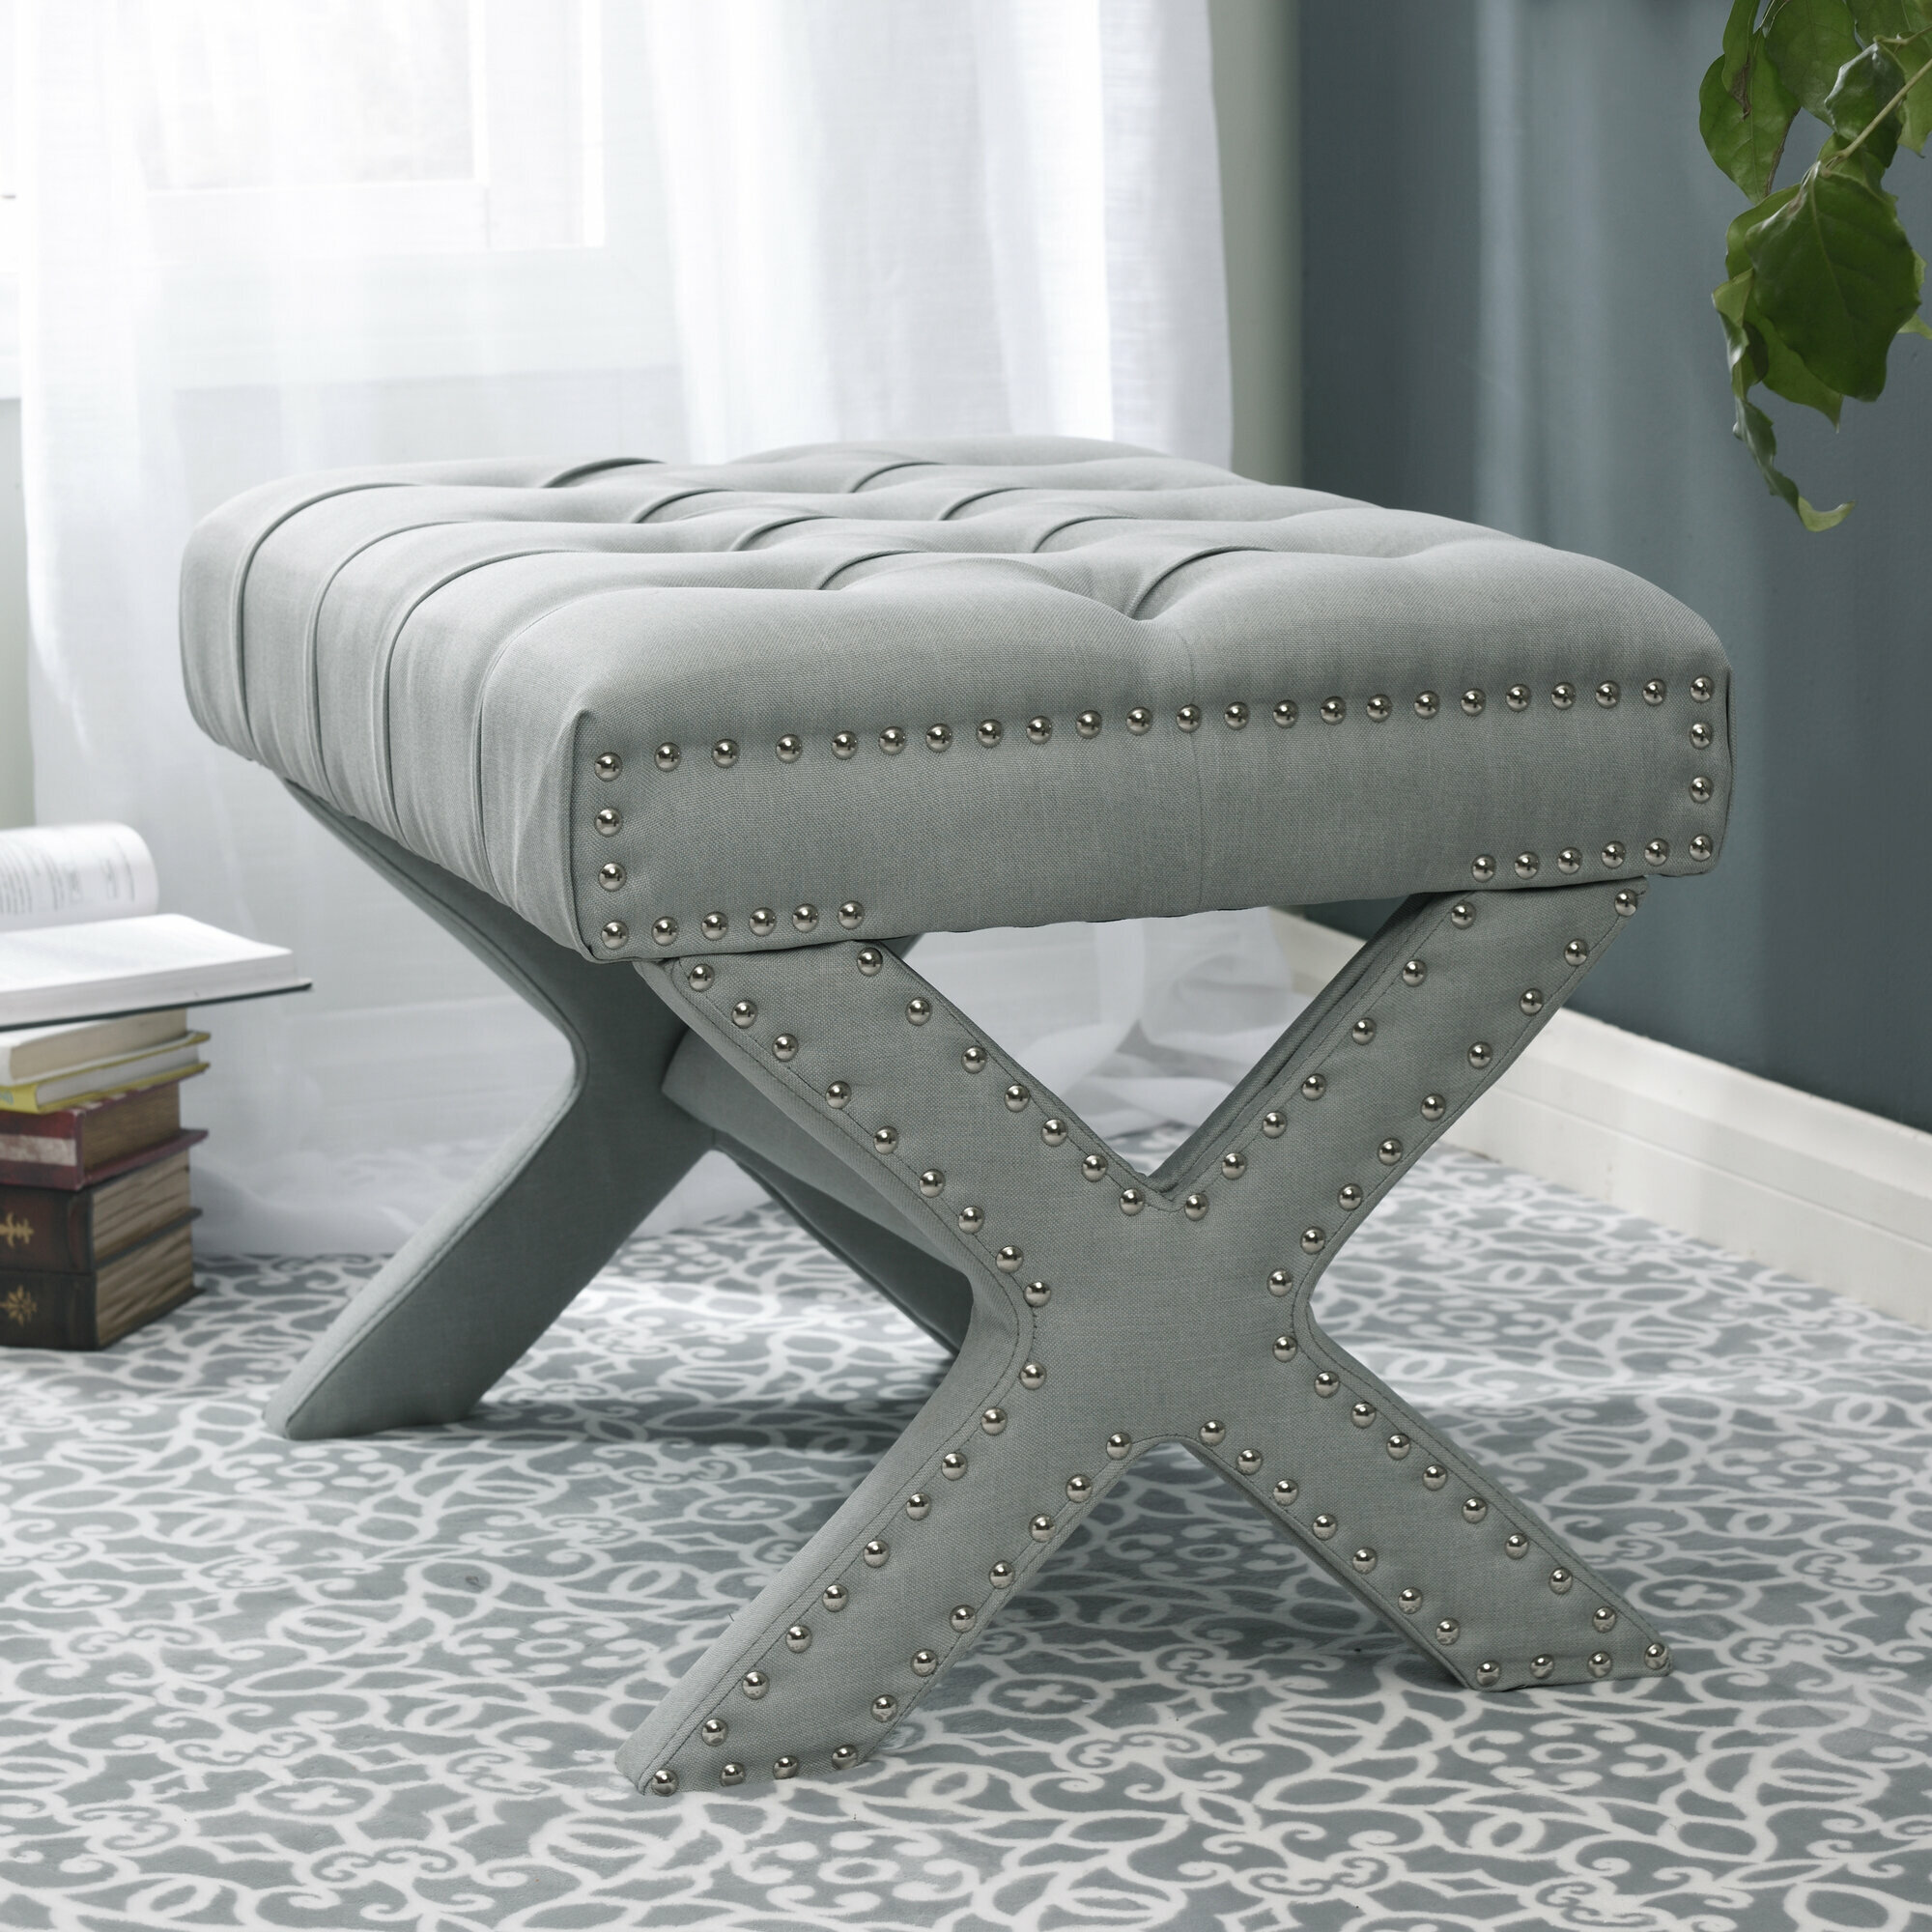 Marvelous Mosqueda Button Tufted Ottoman Gmtry Best Dining Table And Chair Ideas Images Gmtryco